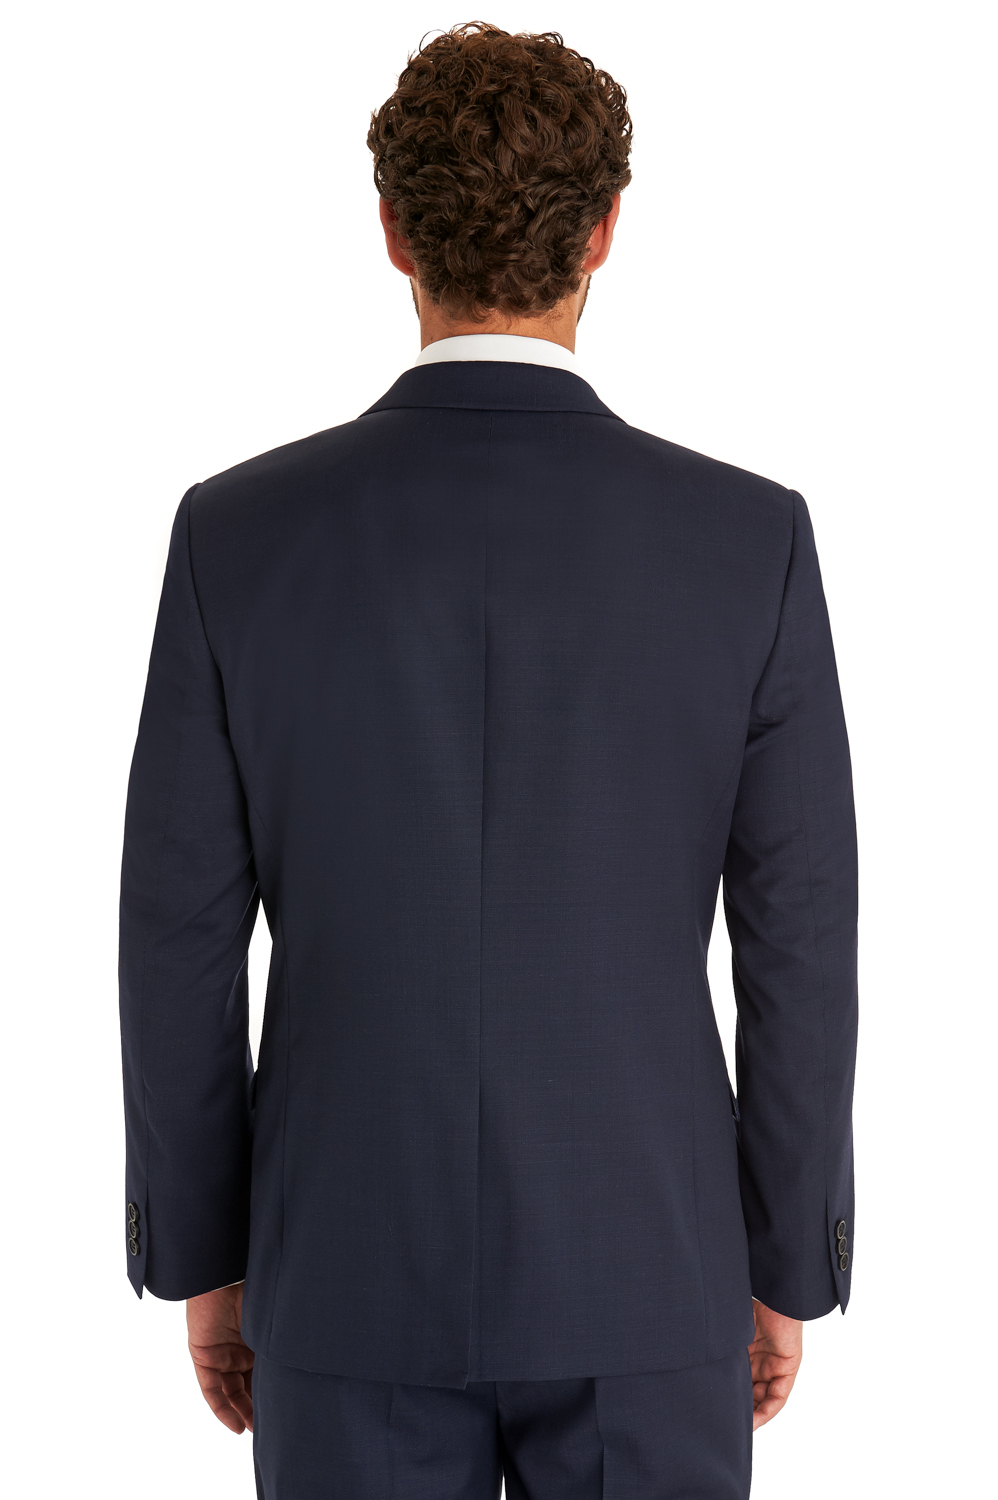 0d6861c35 Ted baker Tailored Fit Blue Pindot Suit in Blue for Men